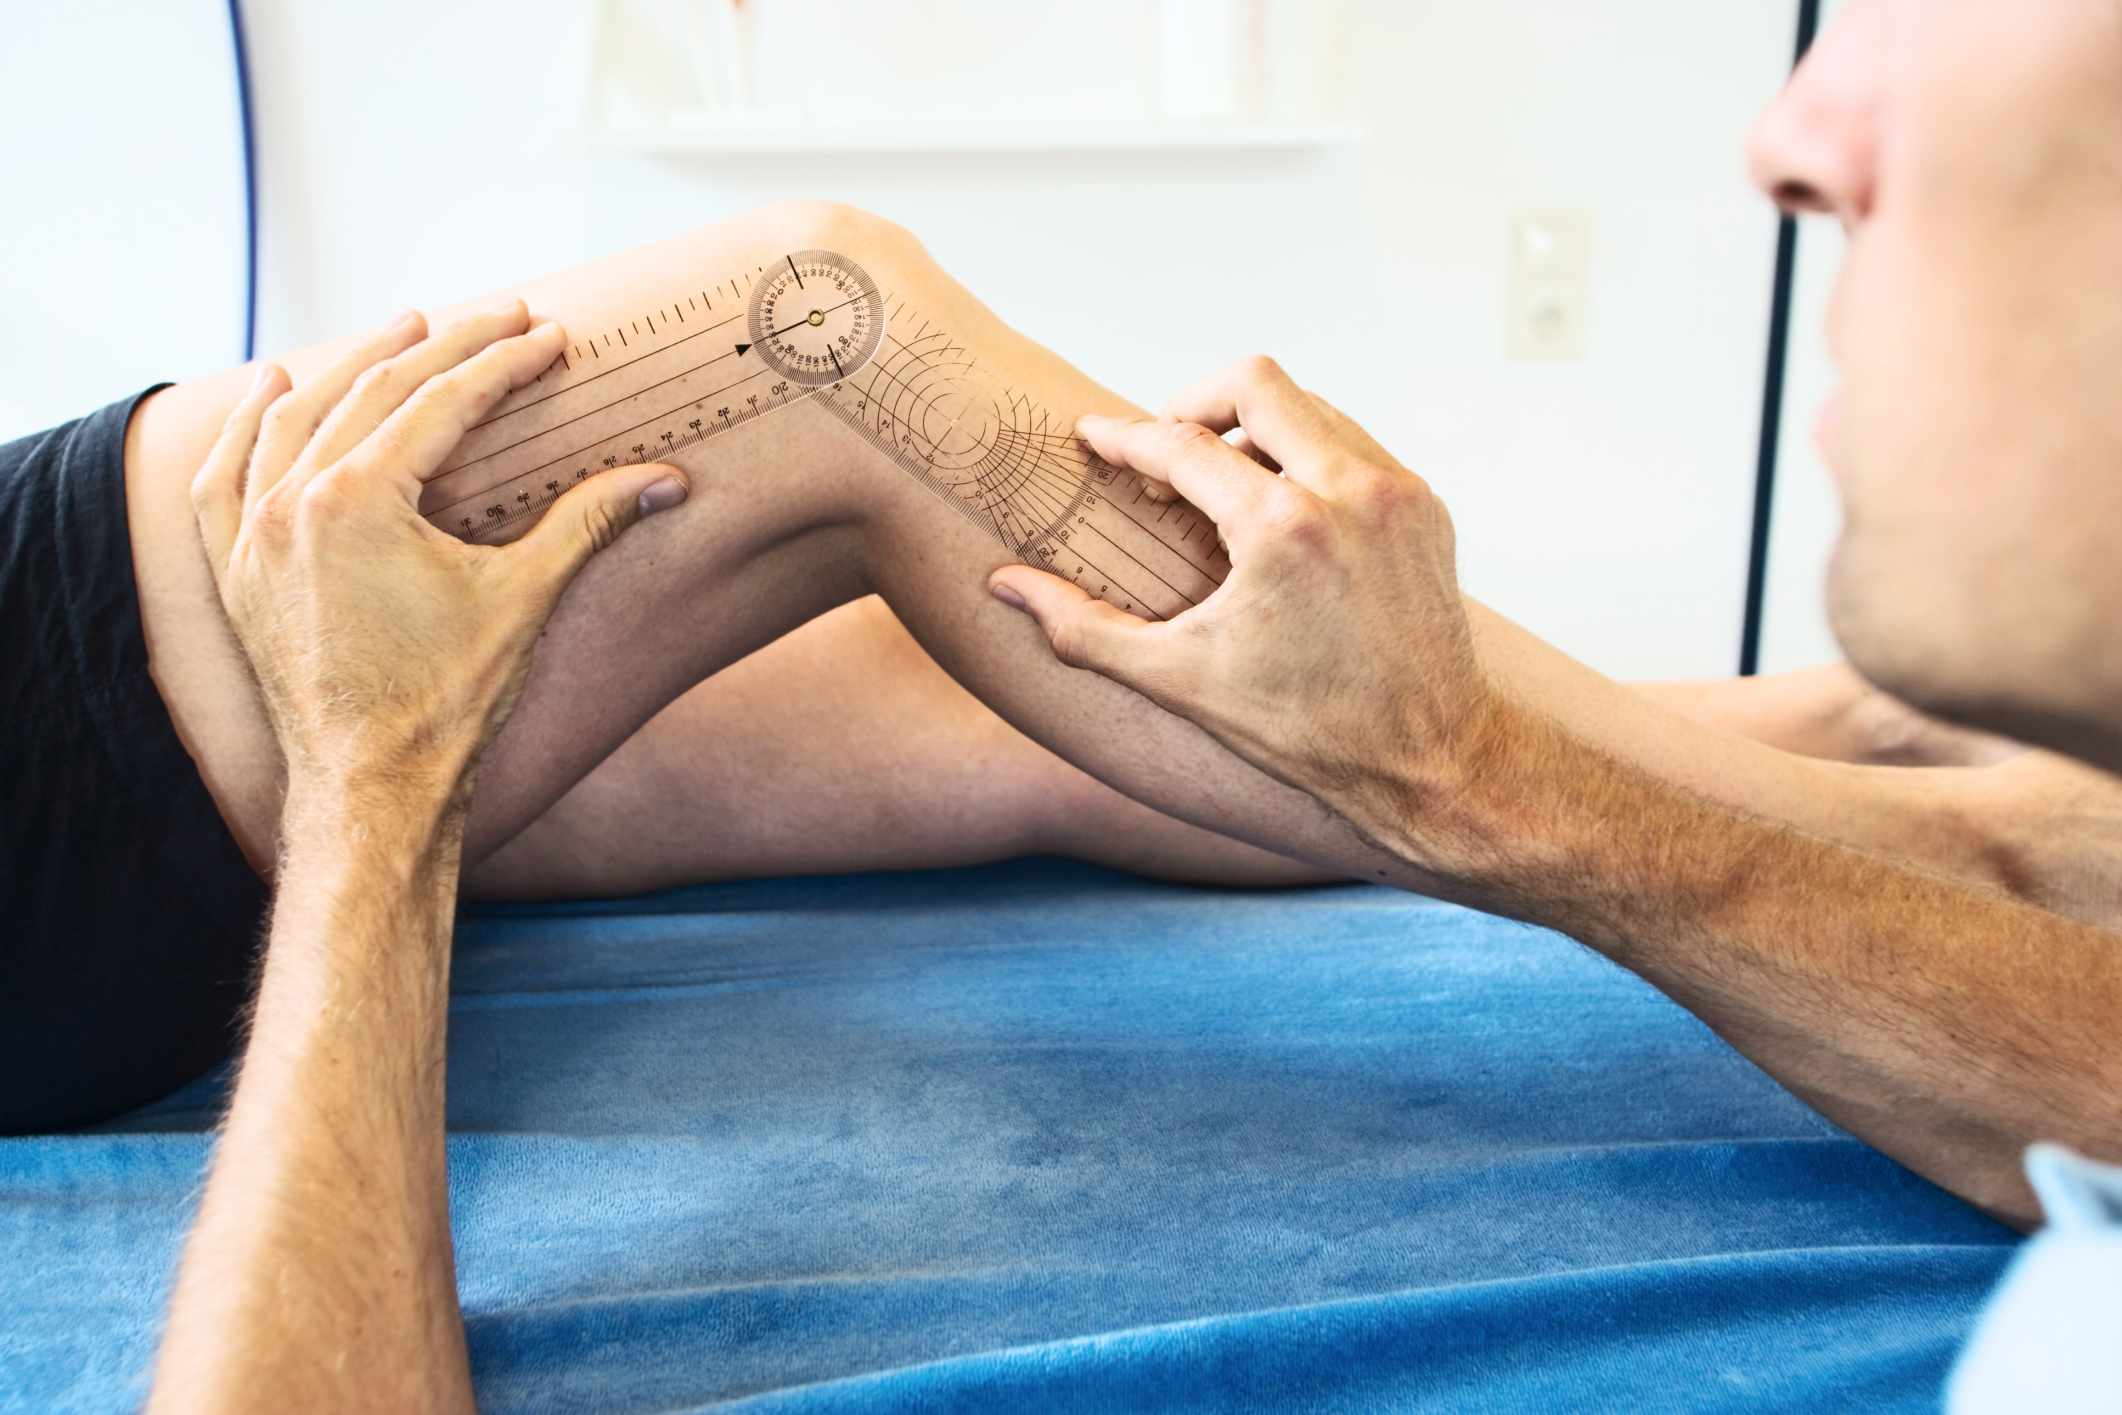 A doctor measuring a knee joint's range